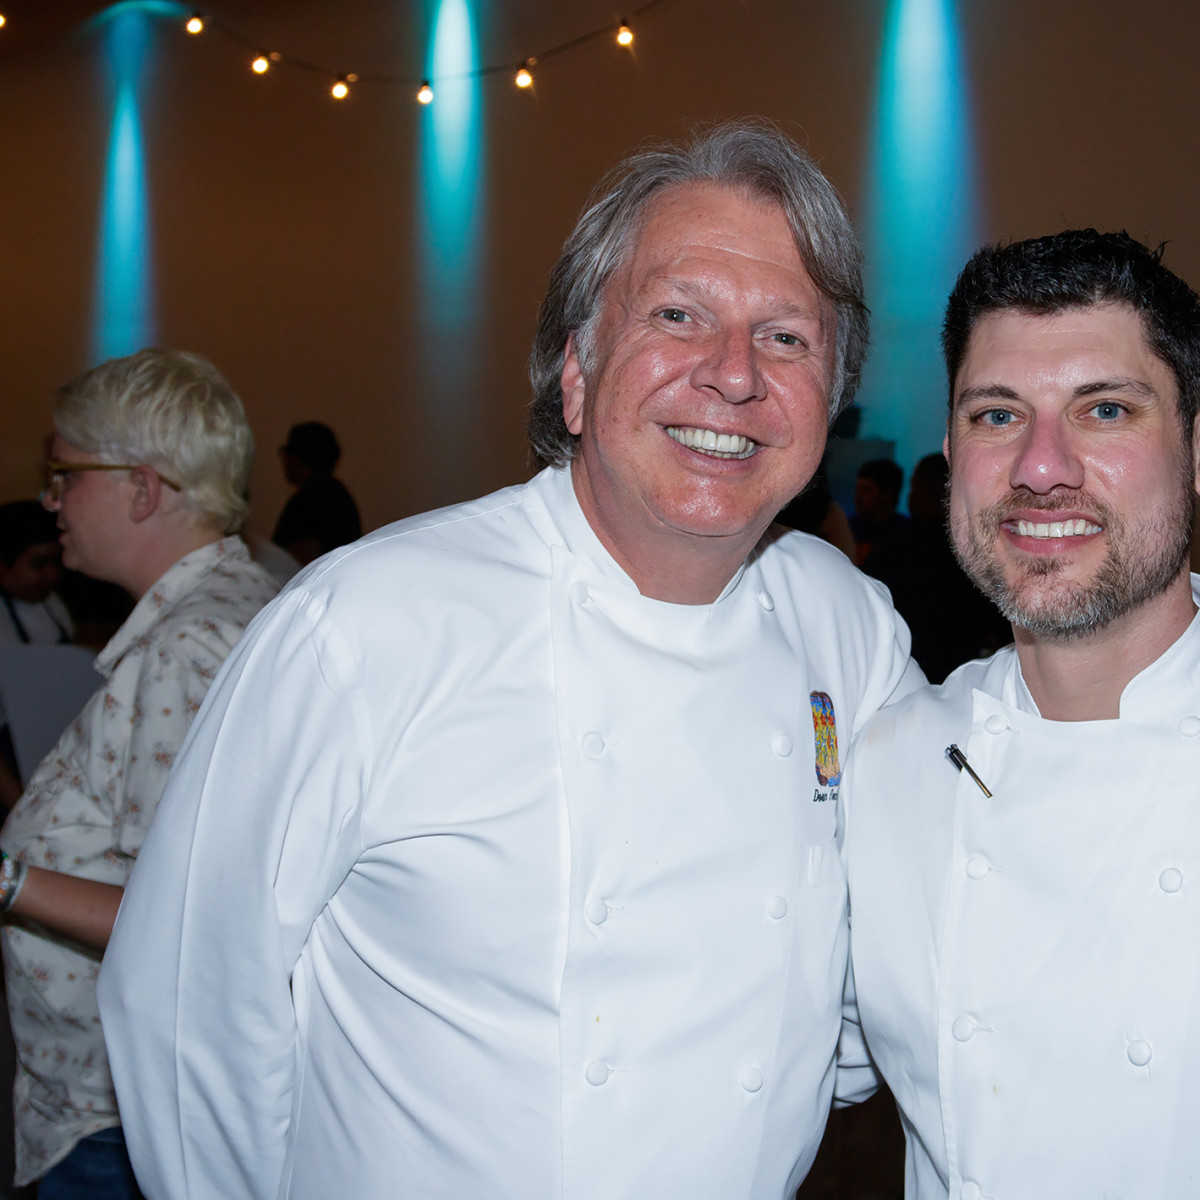 Dallas Tastemaker Awards 2018, Dean Fearing, Eric Dreyer